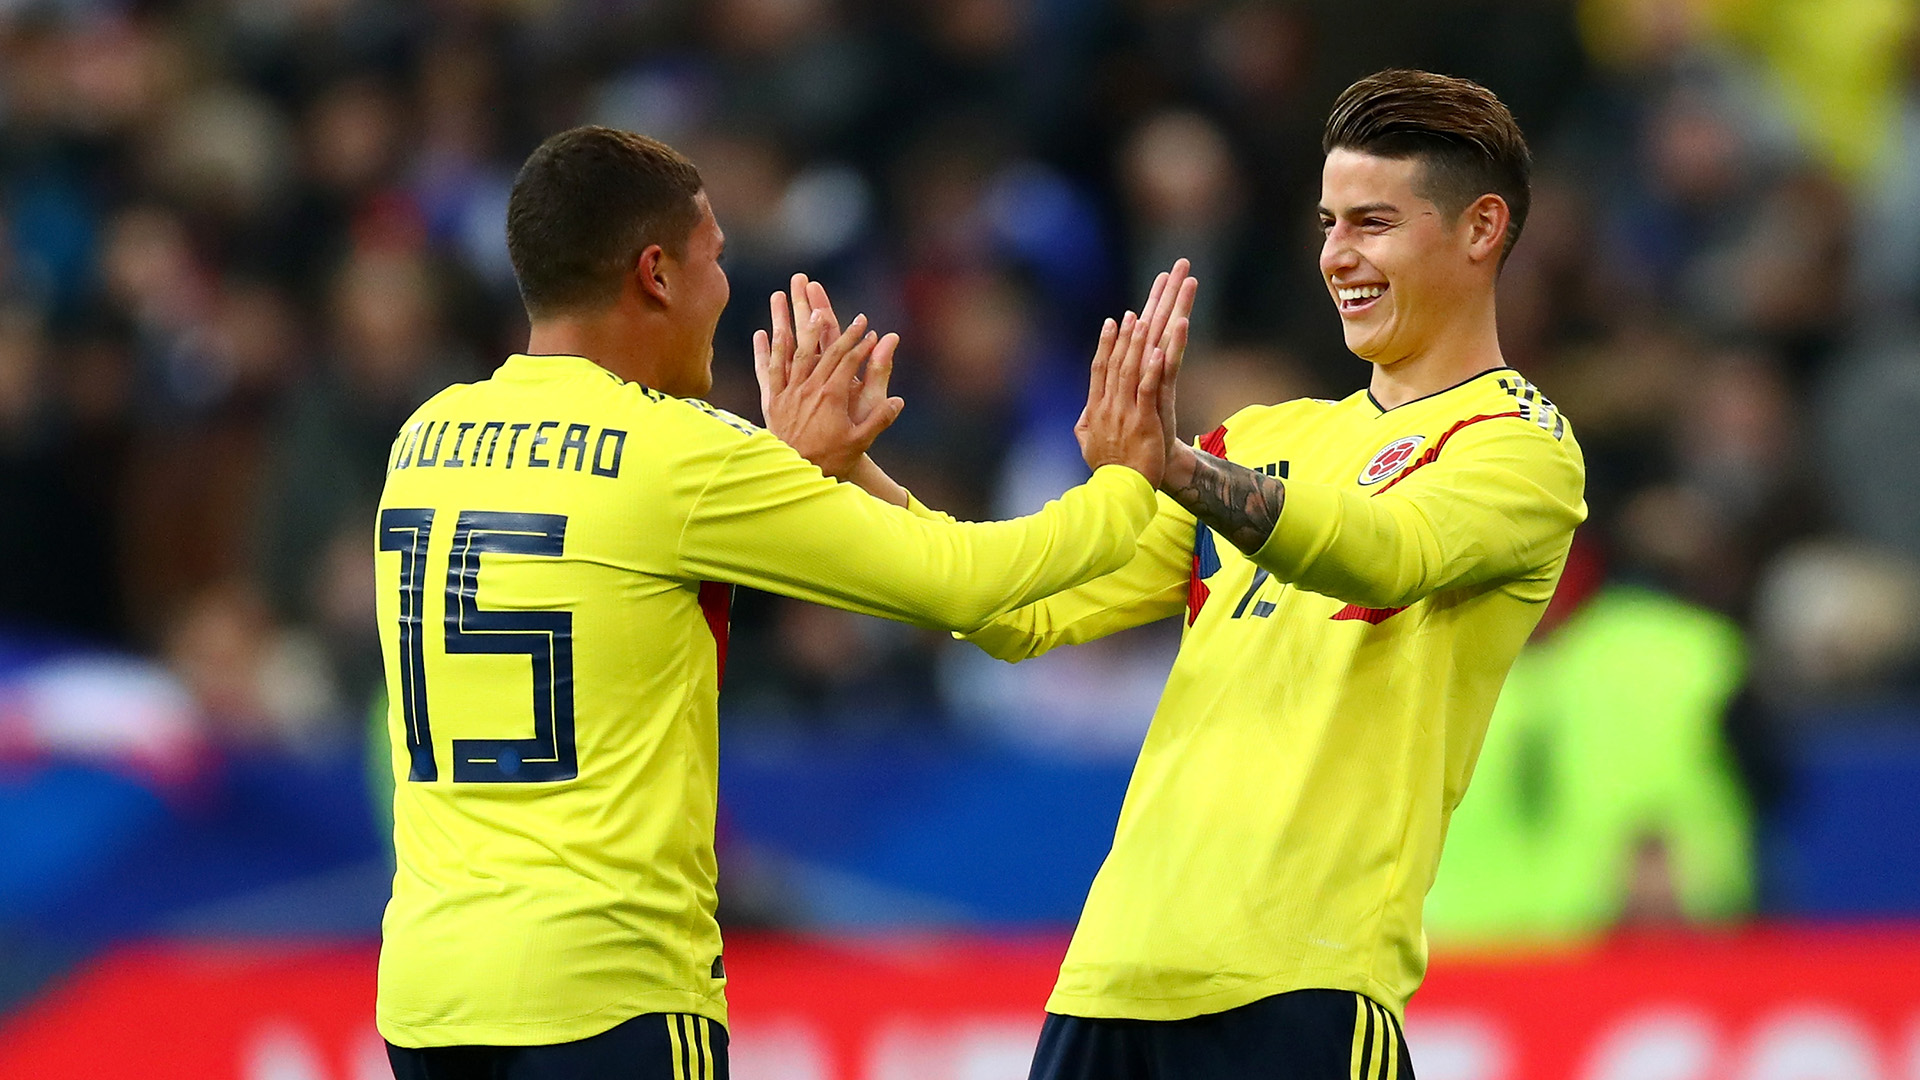 Japan beat 10-man Colombia 2-1 in their World Cup opener